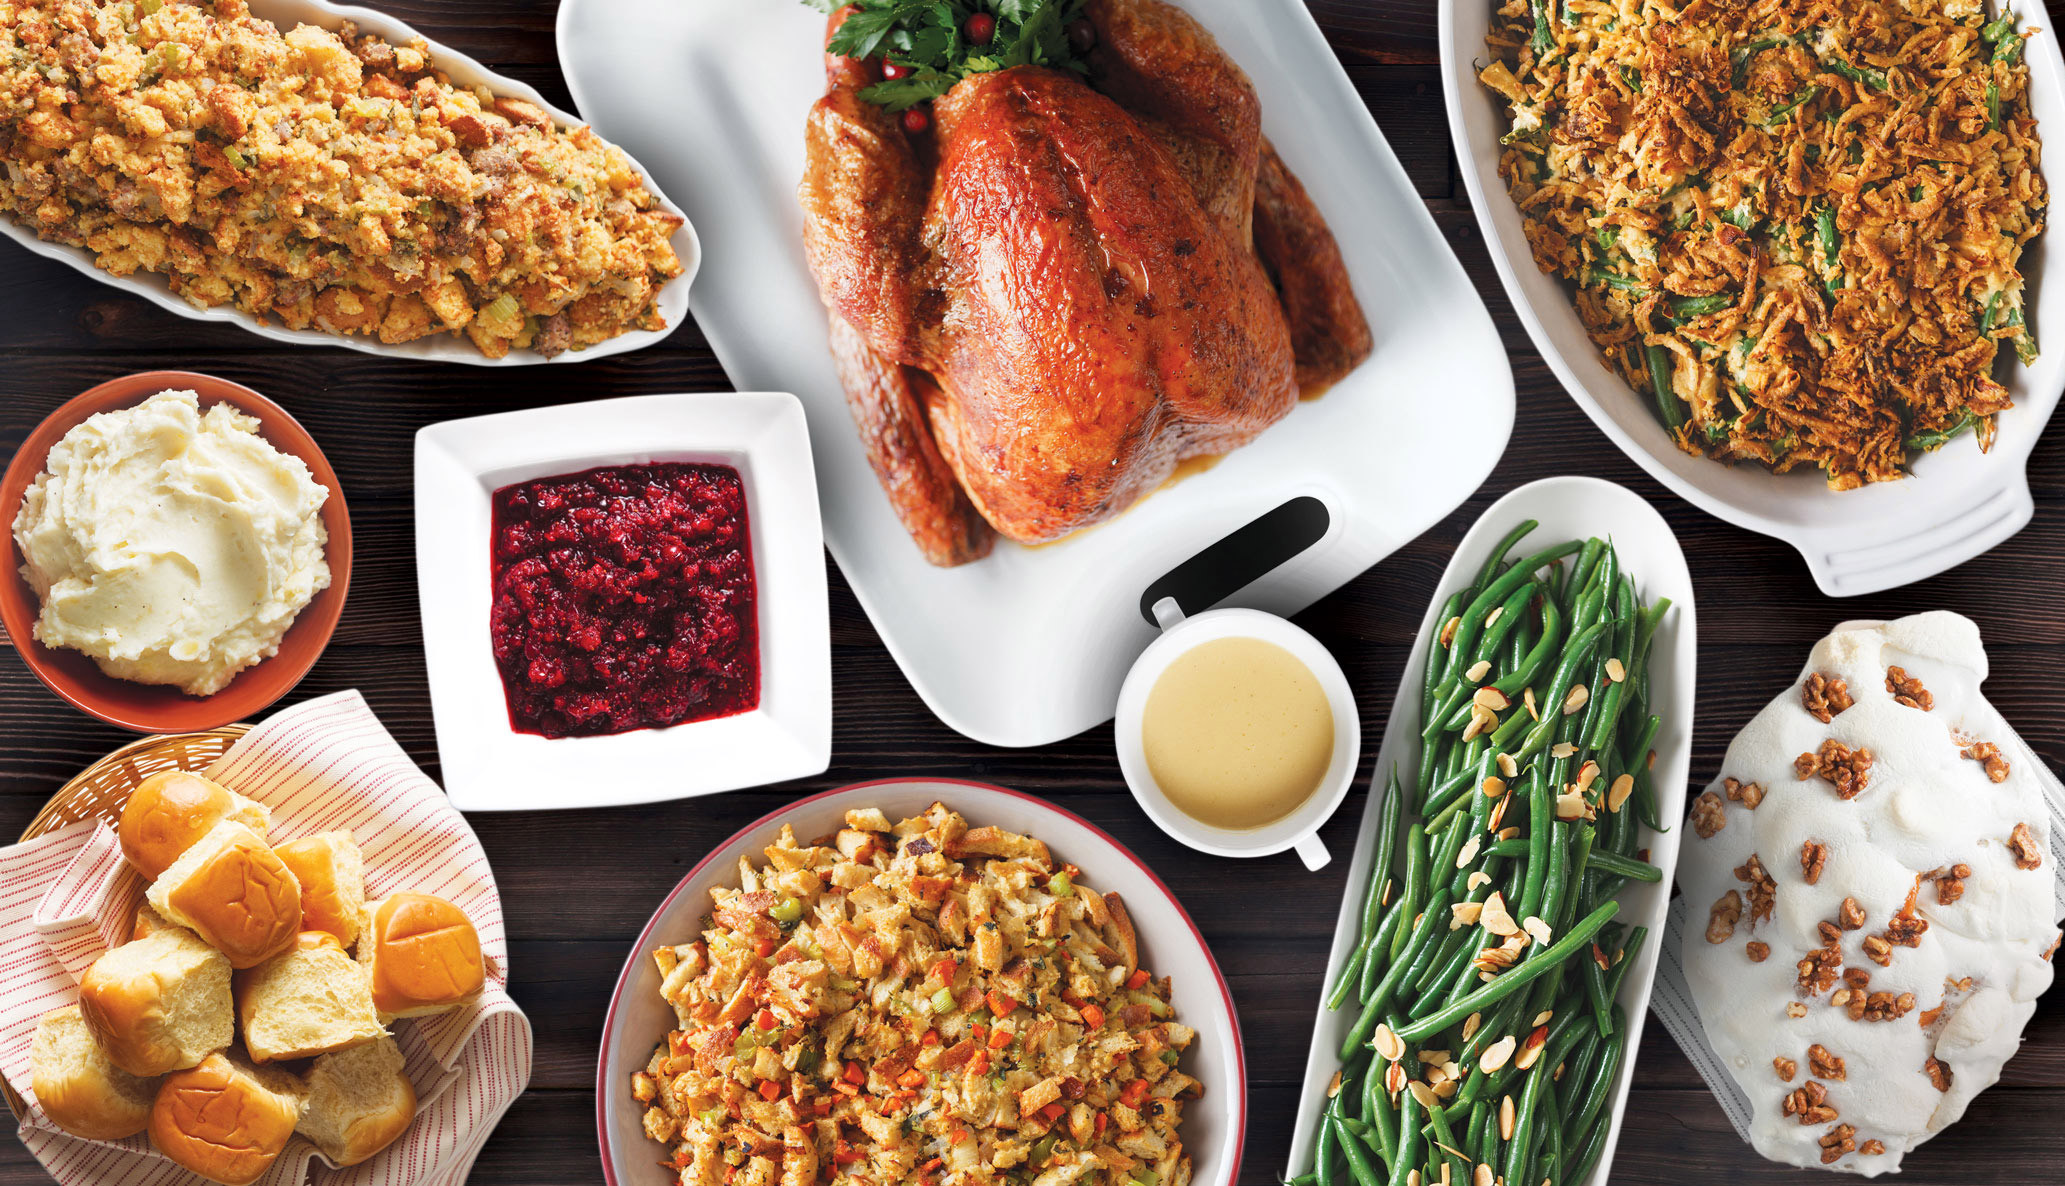 Krogers Thanksgiving Dinner 2019  Holiday meal items Nug Markets Image